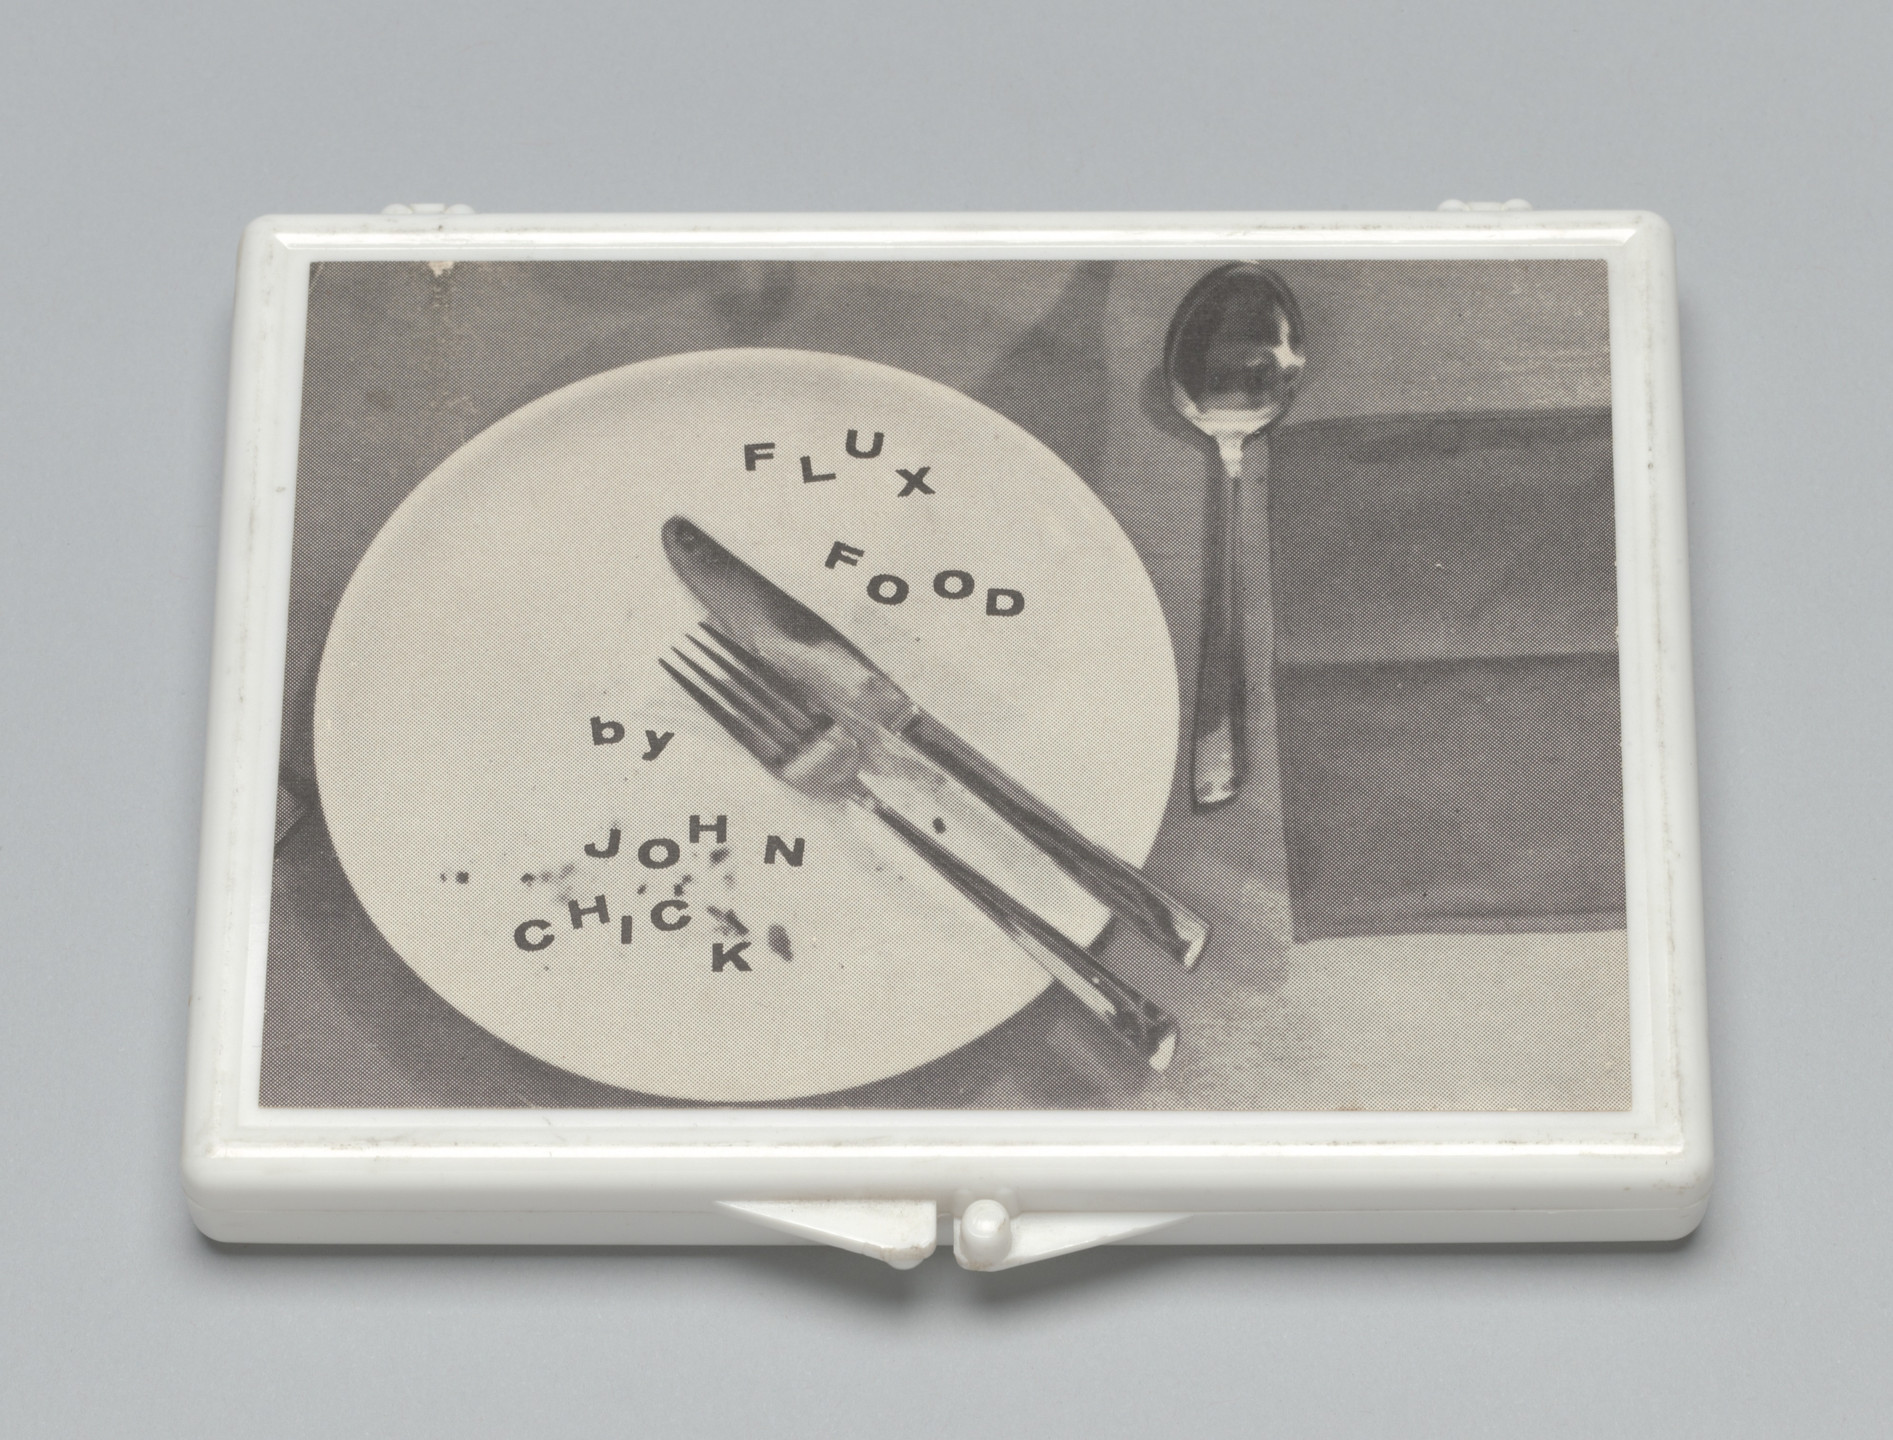 John Chick. Flux Food. 1969